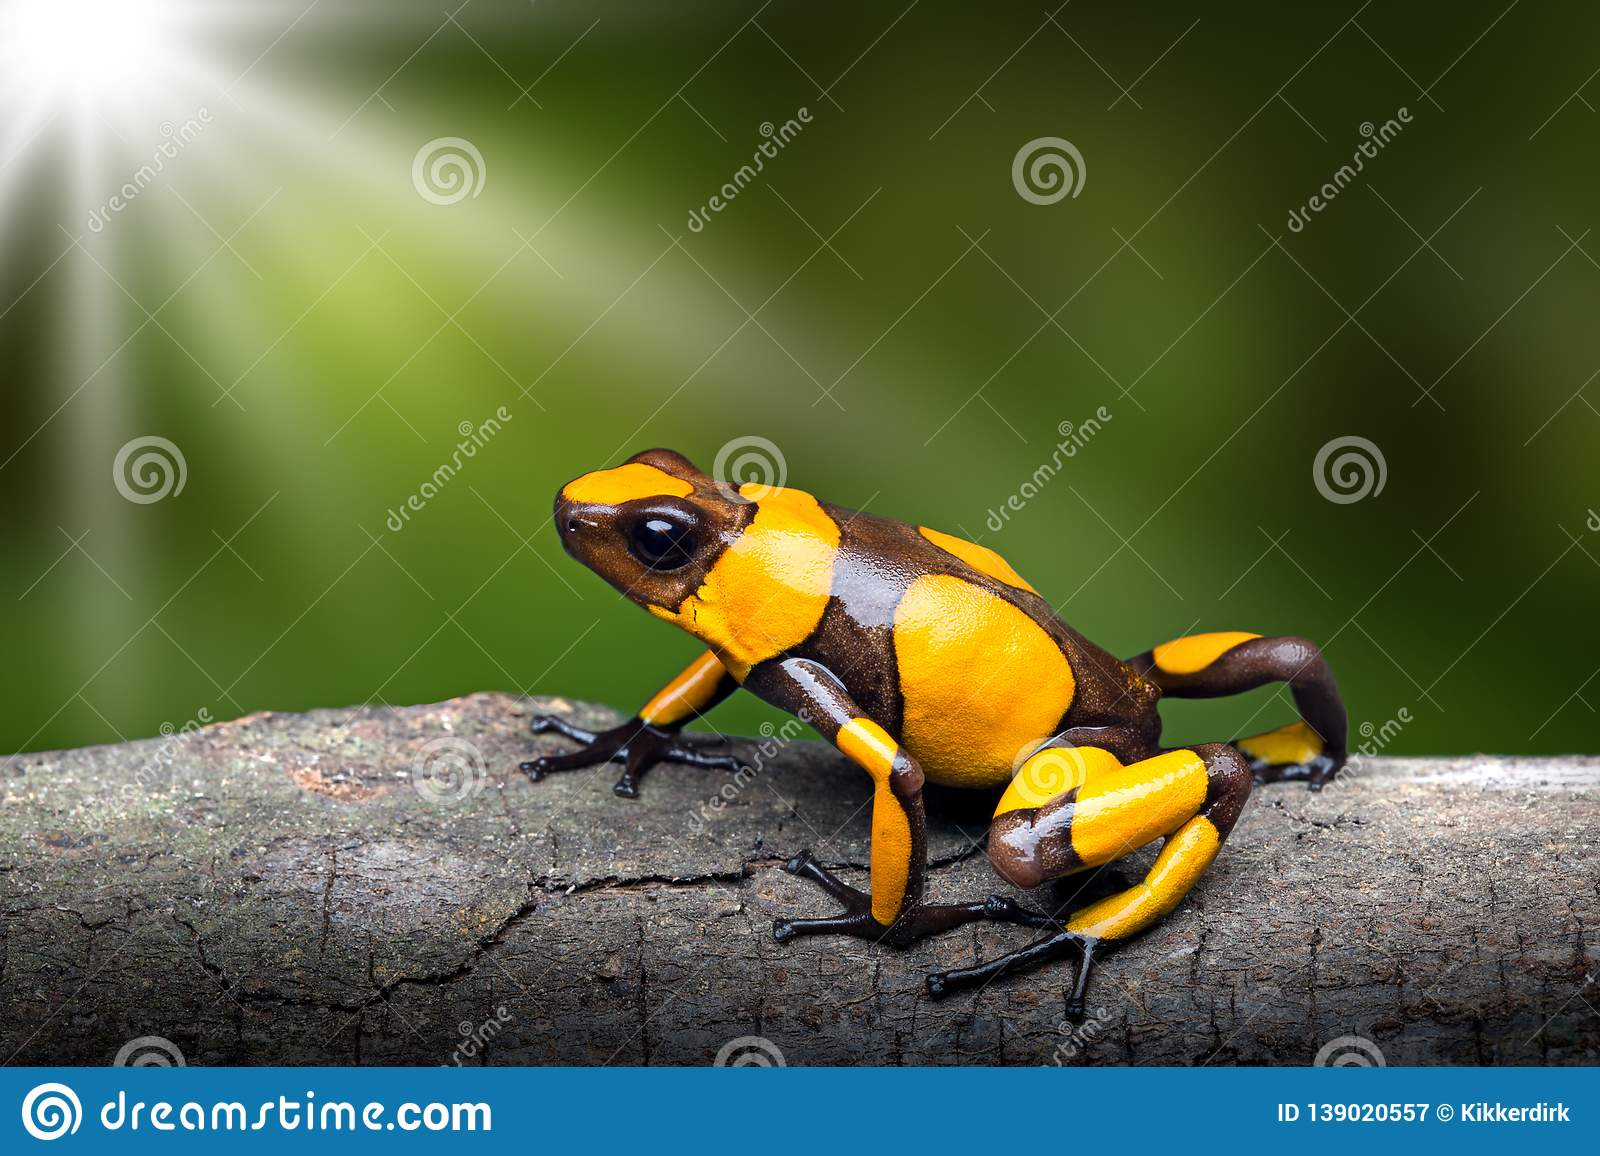 Yellow banded poison dart frog, Oophaga histrionica